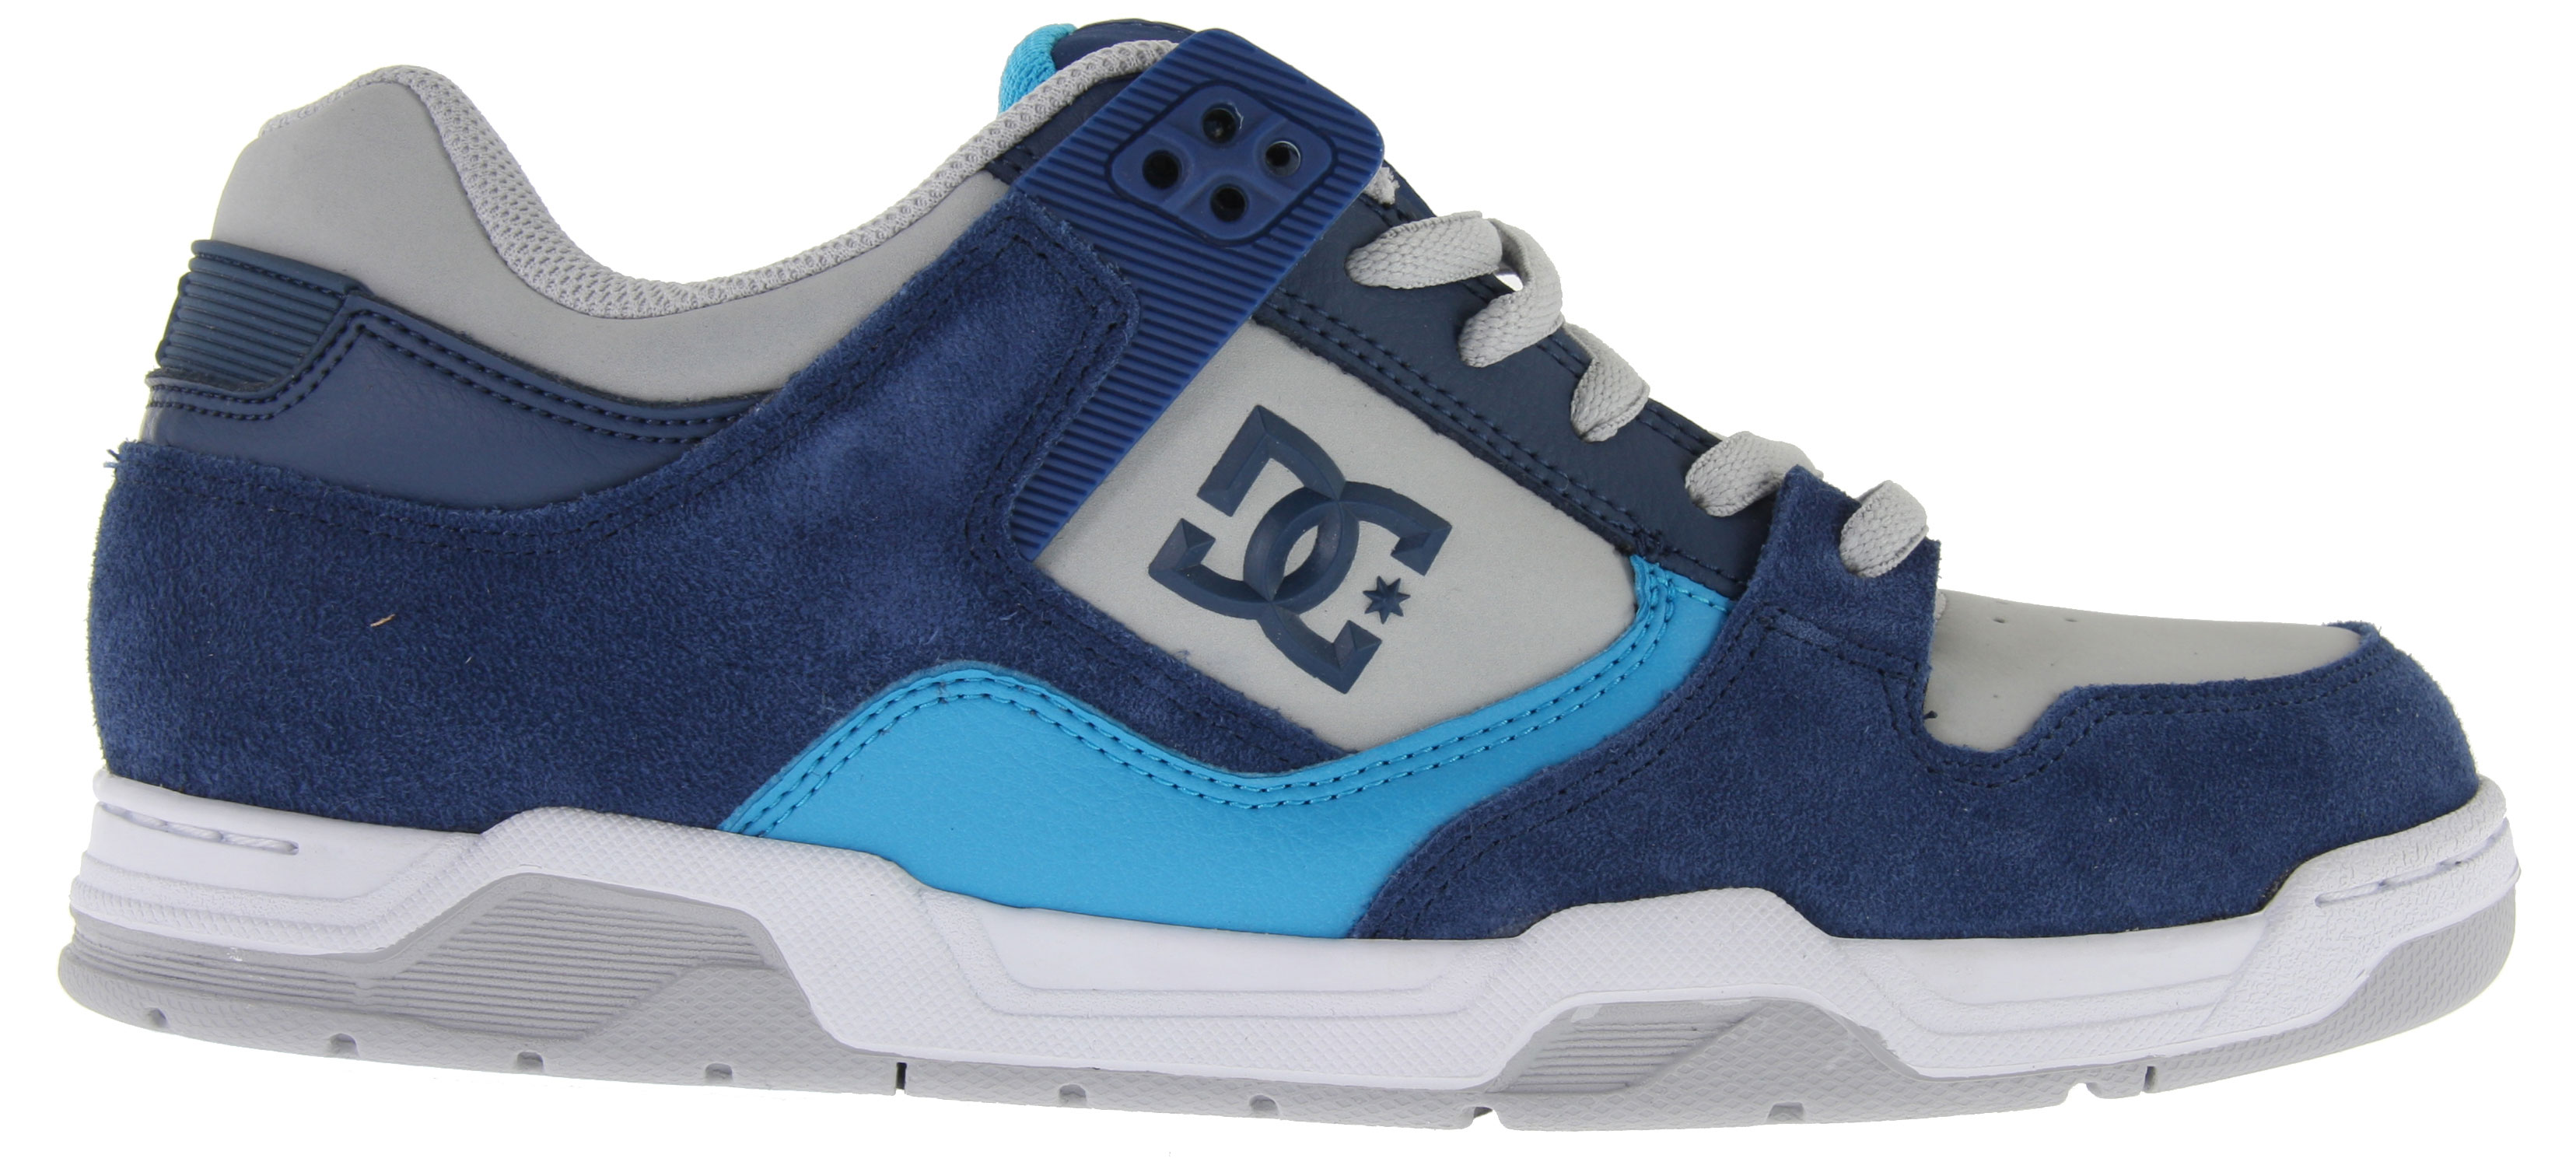 "Skateboard Key Features of the DC Flawless Skate Shoes: Heavy-Duty Suede Upper Perforated Upper Panel TPU Eyelets Foam-Padded Tongue and Collar for added Comfort & Support Lightweight Mesh Tongue Spandex Tongue Holders for Comfort DC's Performance Wrap Cup Sole Abrasion-Resistant Sticky Rubber Outsole with DC's Trademarked ""Pill"" Pattern - $59.95"